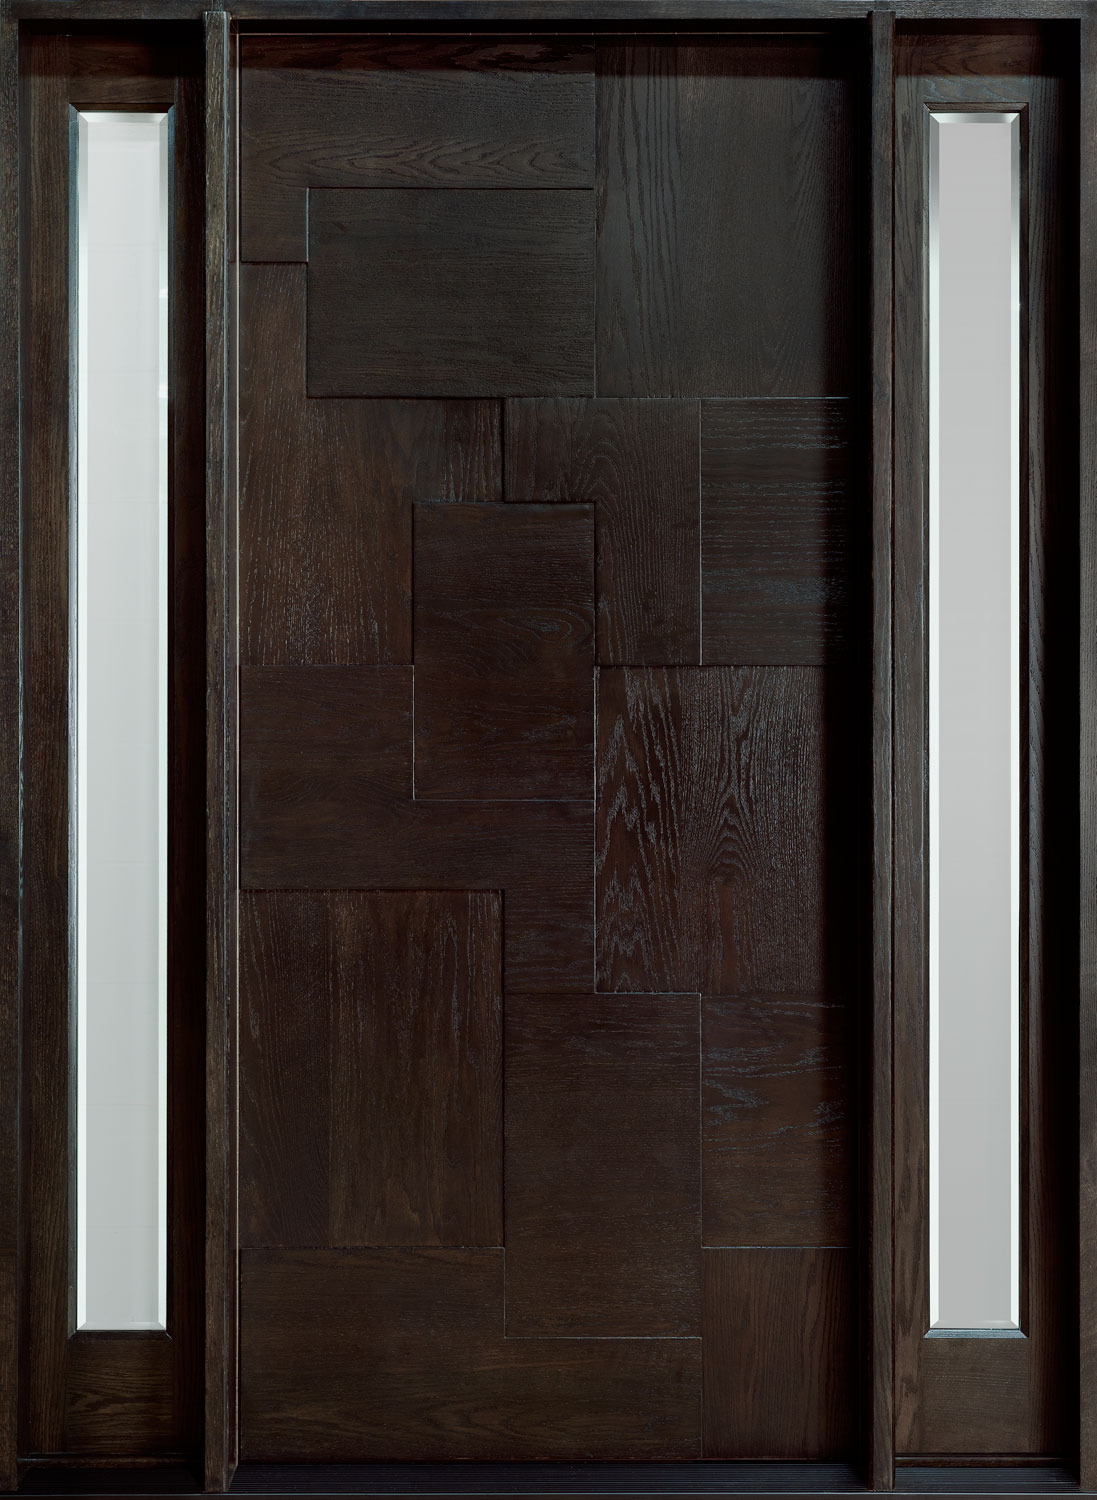 Wood Door Door=DB 002 2SL CST Mahogany Espresso&Type=Front&cs=Custom&DoorSeries=Modern